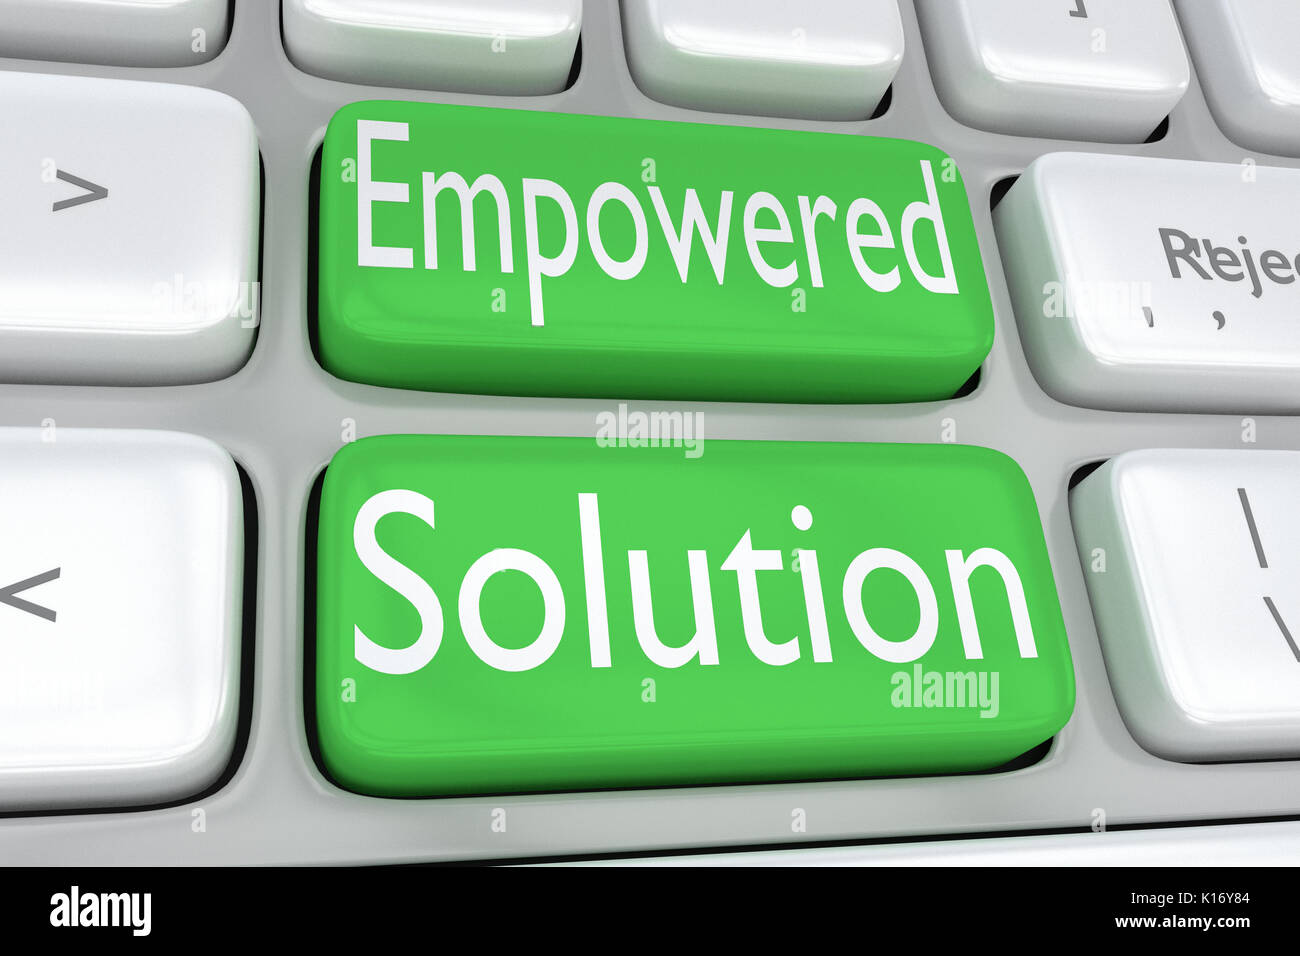 "3D illustration of computer keyboard with the print ""Empowered Solution"" on two adjacent green buttons Stock Photo"